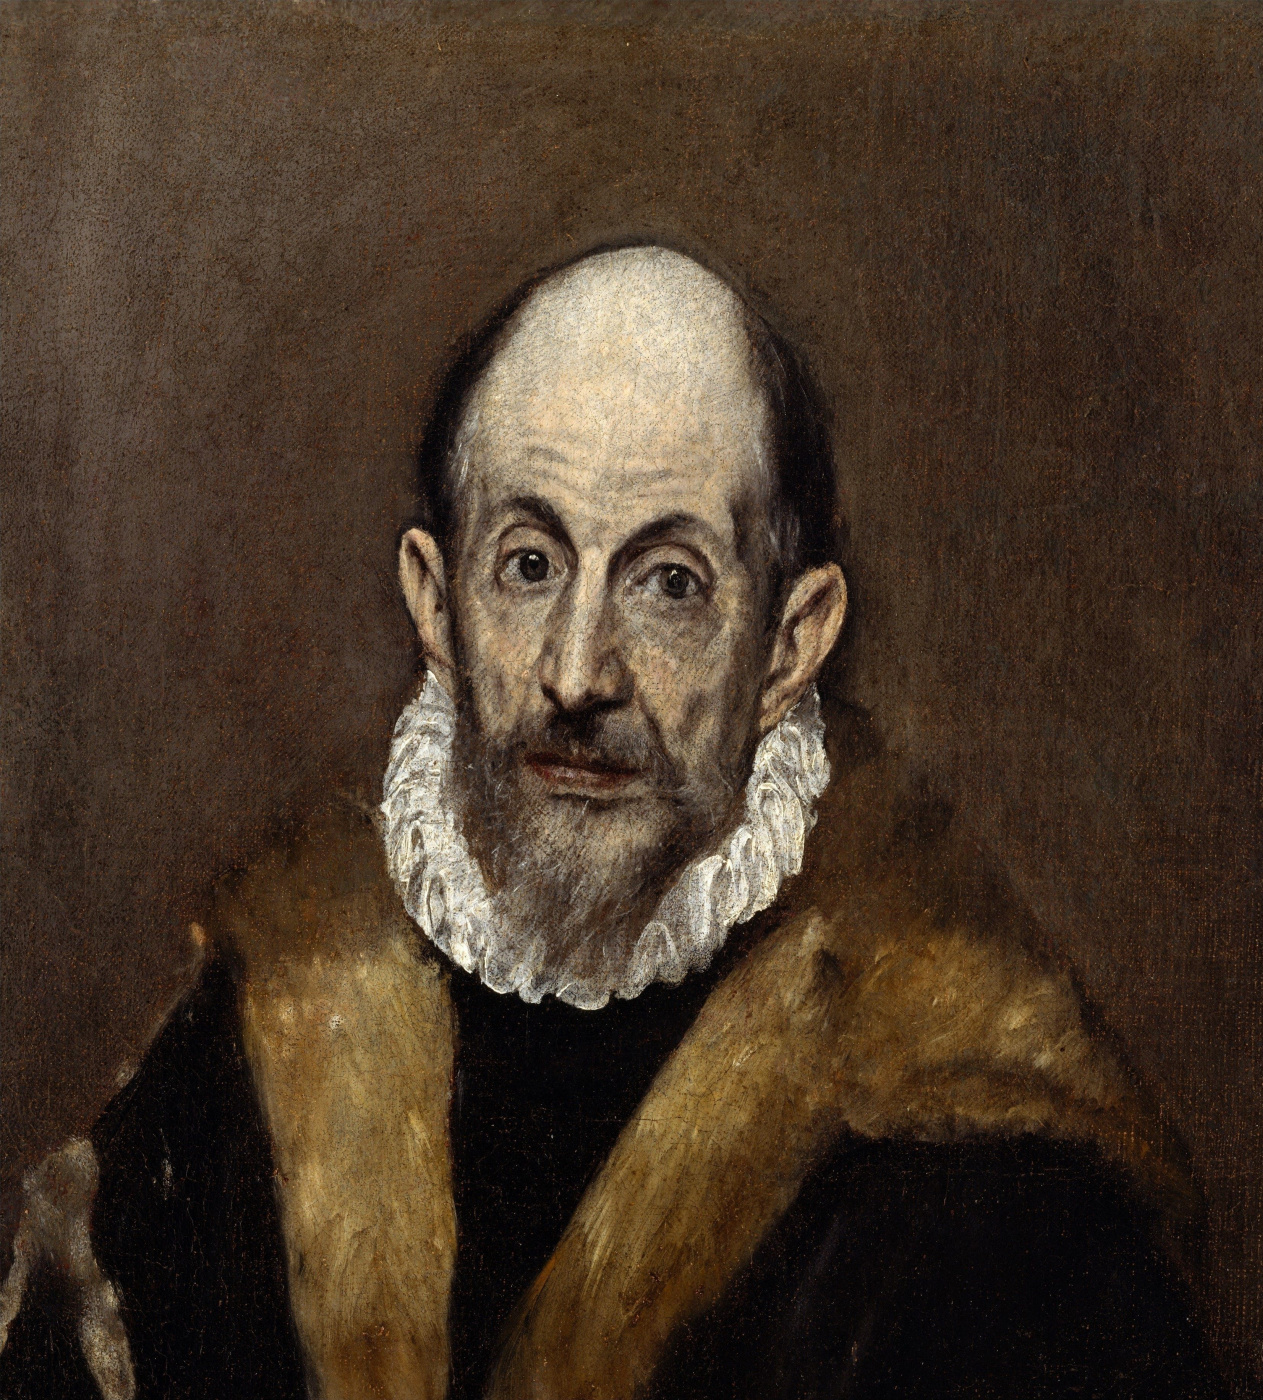 El Greco from A to Z: Life, Death and Revival